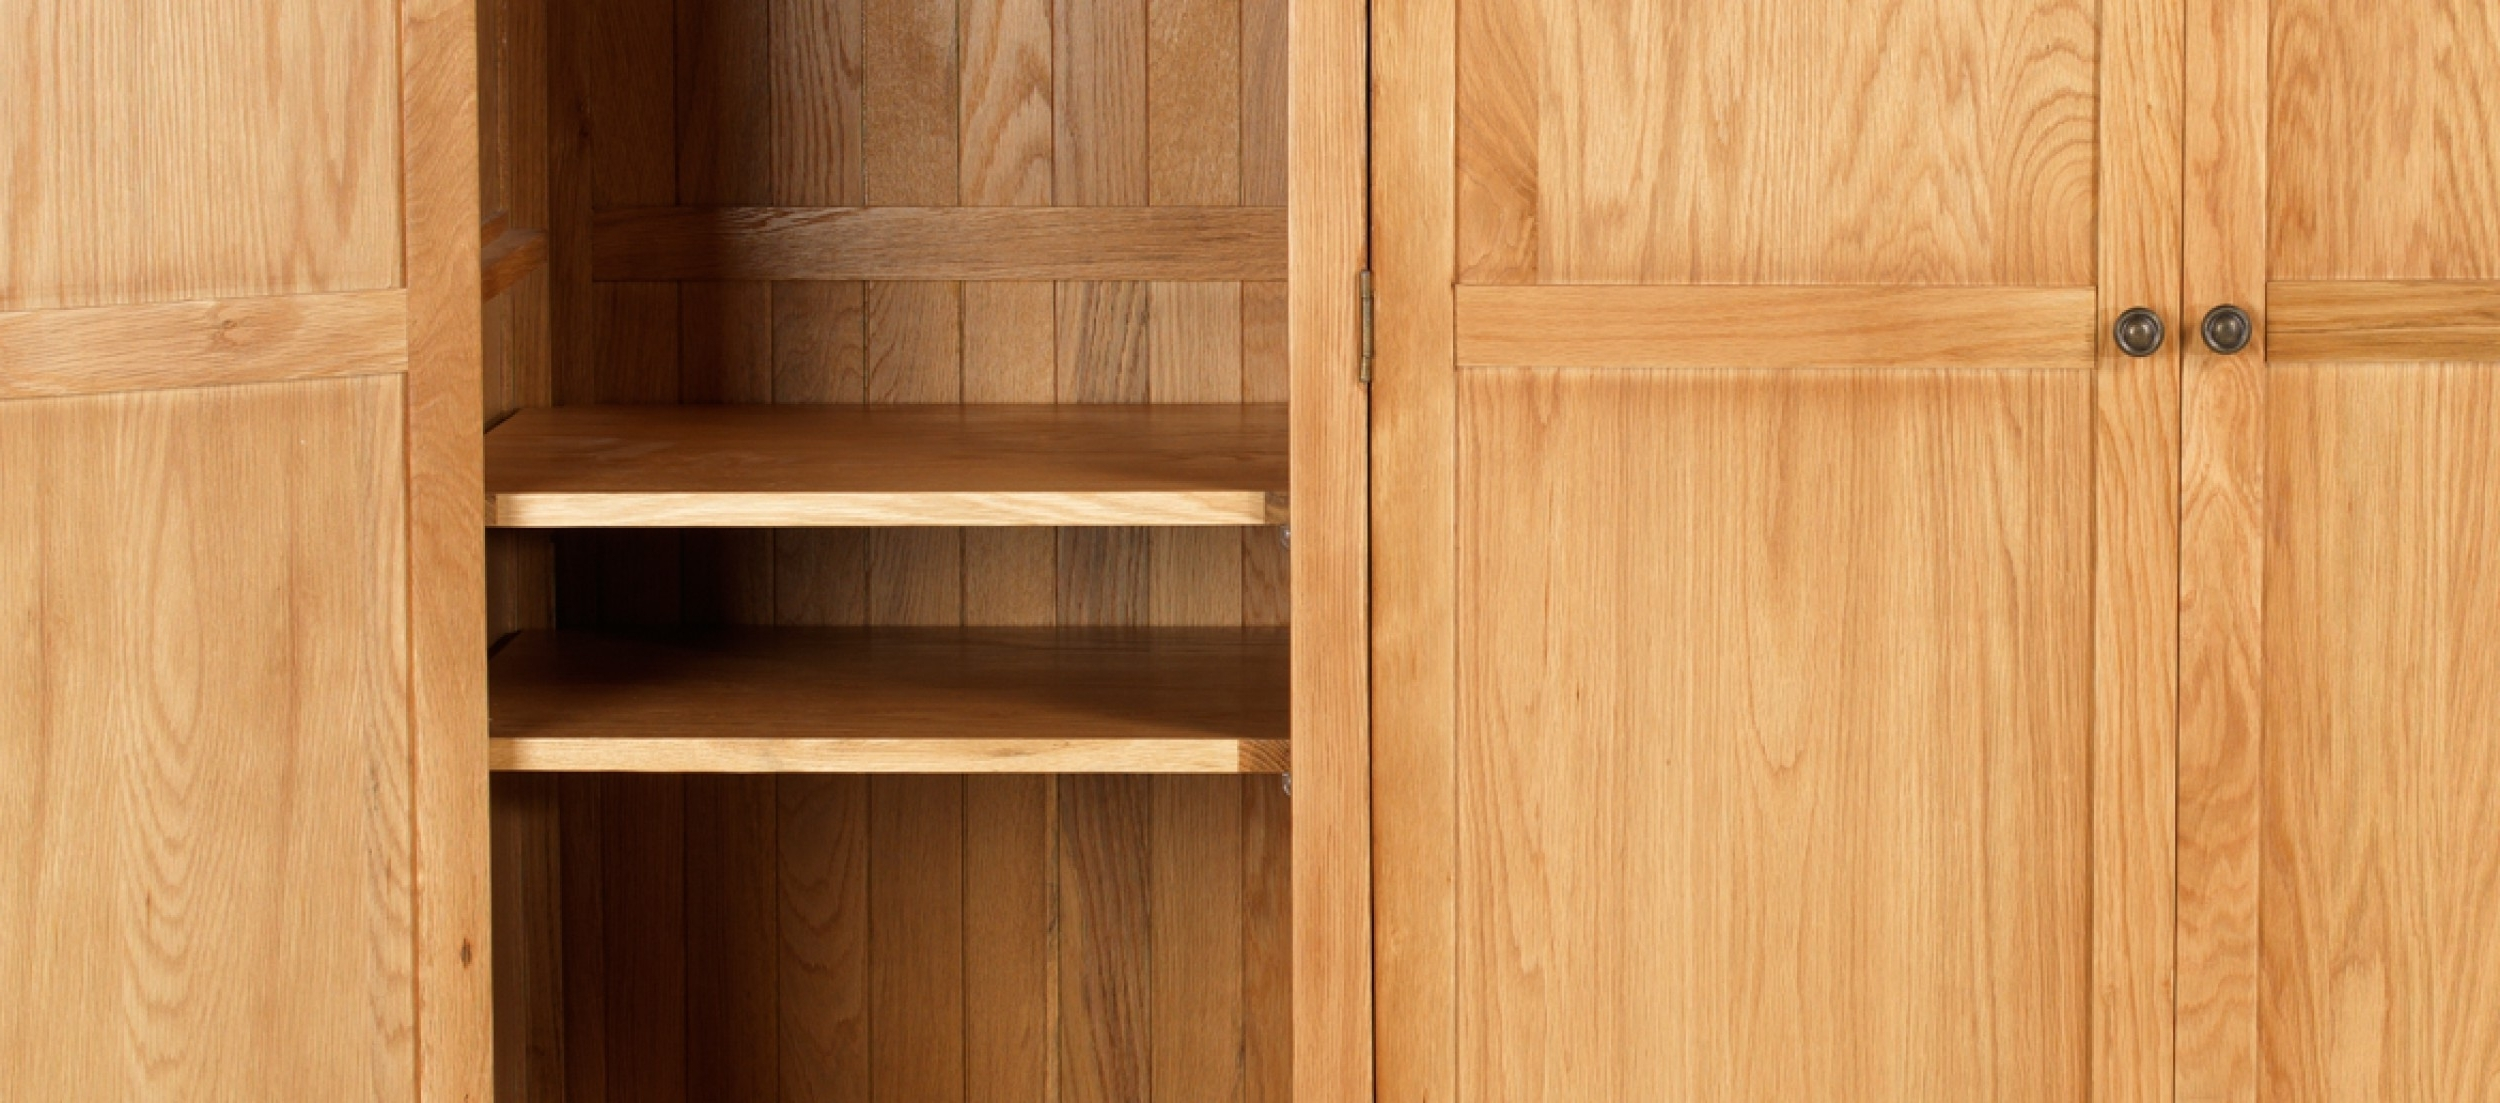 Famous Pine Wardrobes With Drawers And Shelves In Wardrobe With Drawers Ikea Solid Pine Small Sliding Doors And (View 6 of 15)